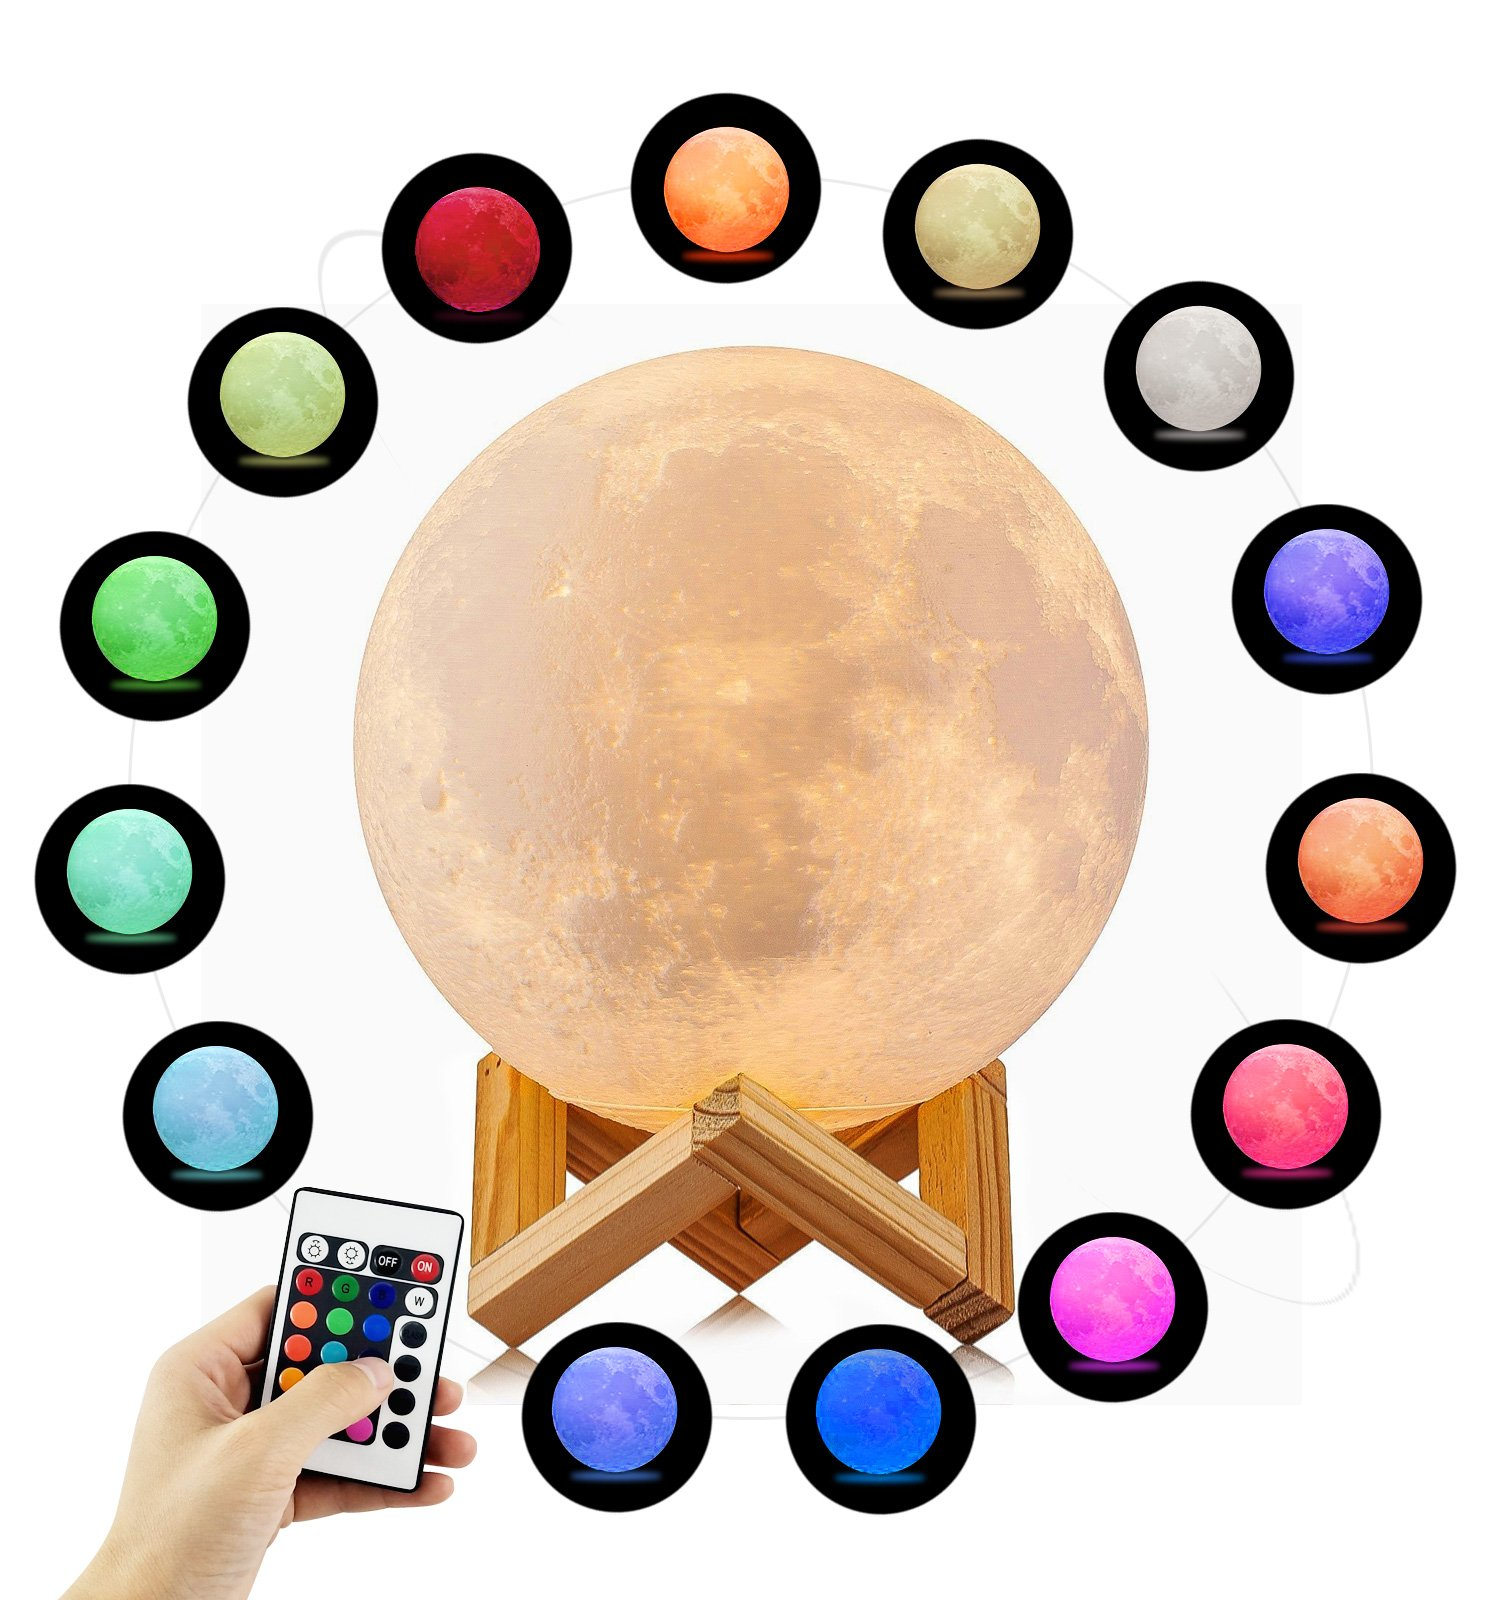 3D Printed Moon Lamp Lighting Night Light,Elstey Remote Control 16 Colors Change Optical USB Charging Wooden Base with Touch and Remote MoonLight Valentine's Decoration(5.9in/15cm)